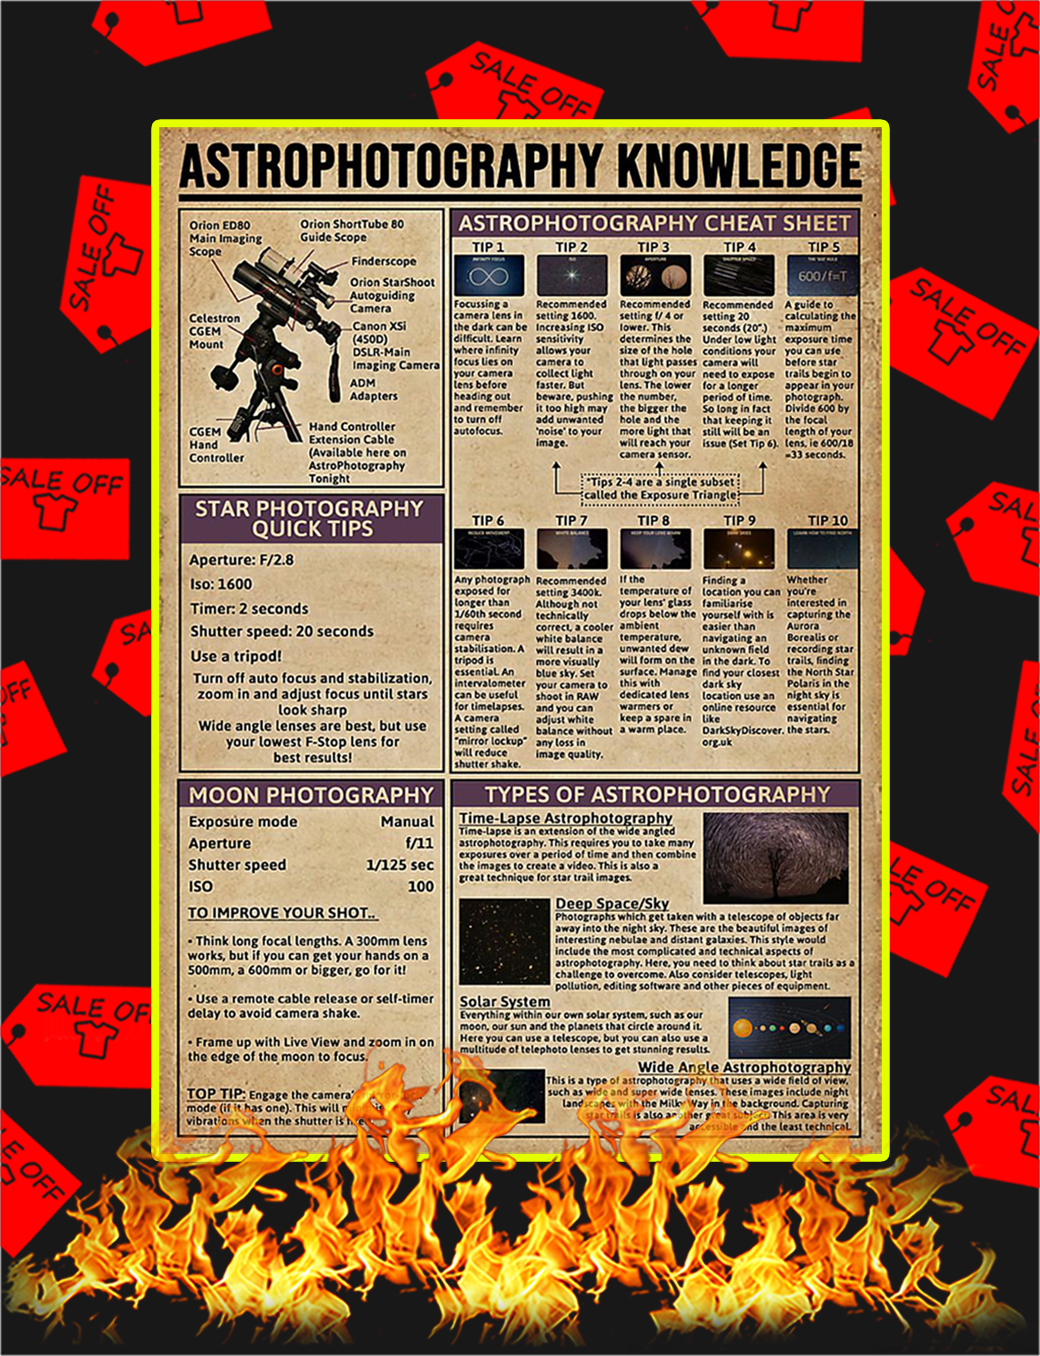 Astrophotography Knowledge Poster - A3